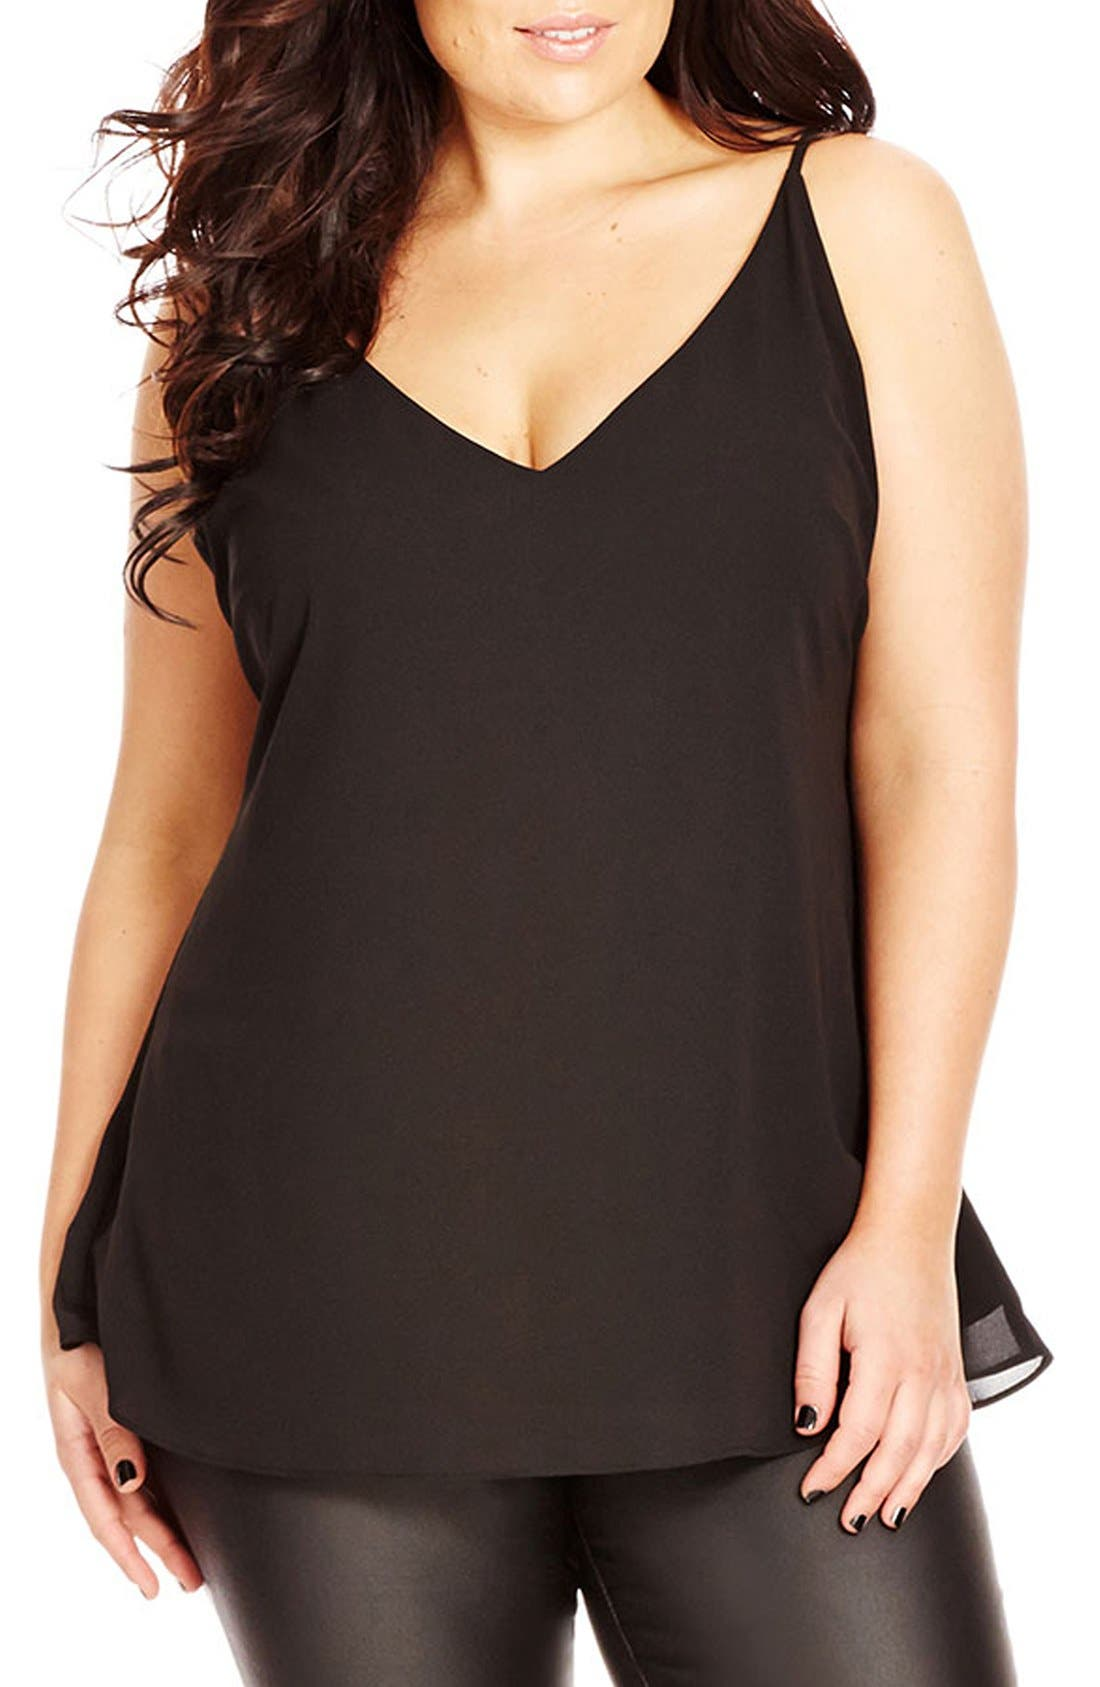 Main Image - City Chic Double Layer V-Neck Camisole Top (Plus Size)